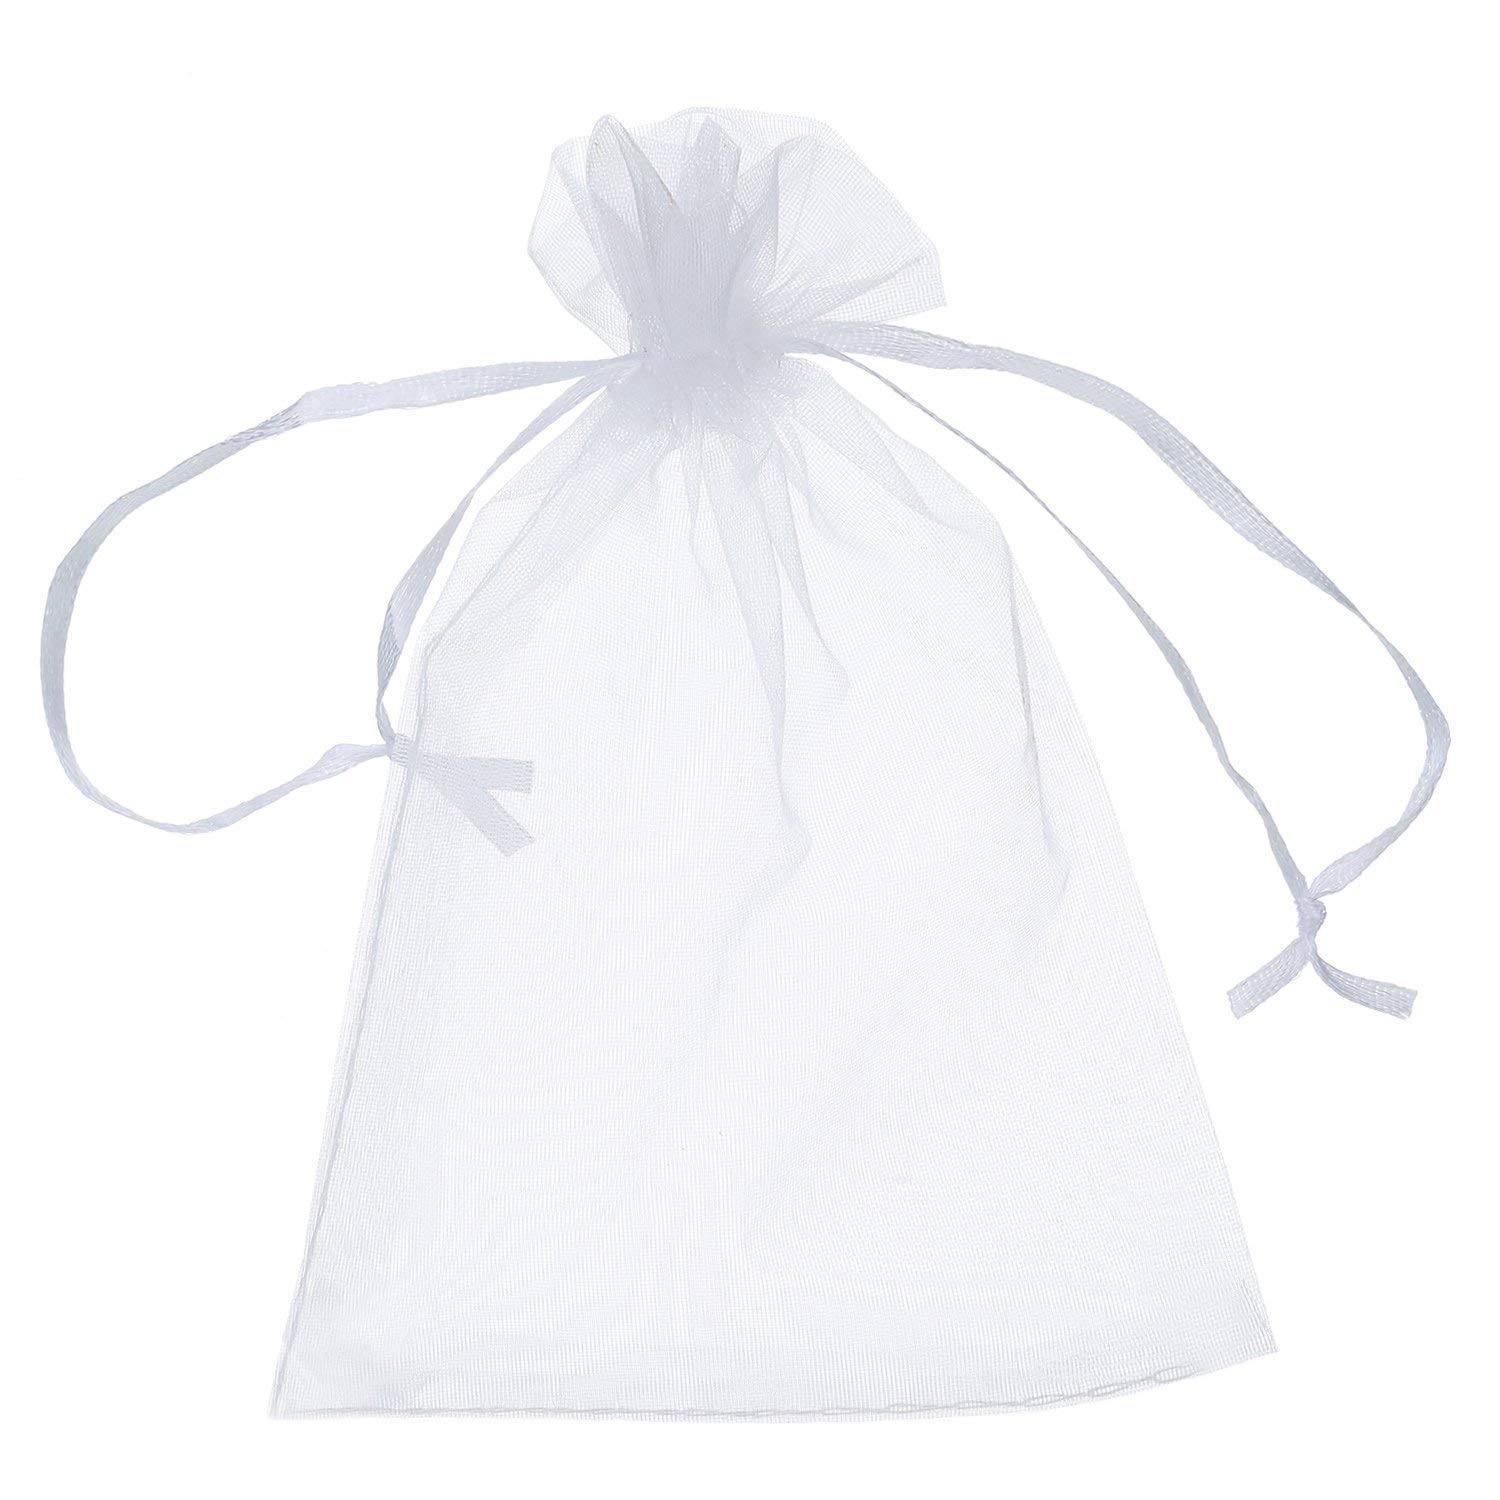 EPRHY Drawstring Organza Jewelry Candy Pouch Christmas Wedding Party Favor Gift Bags 50pcs 3x4, White